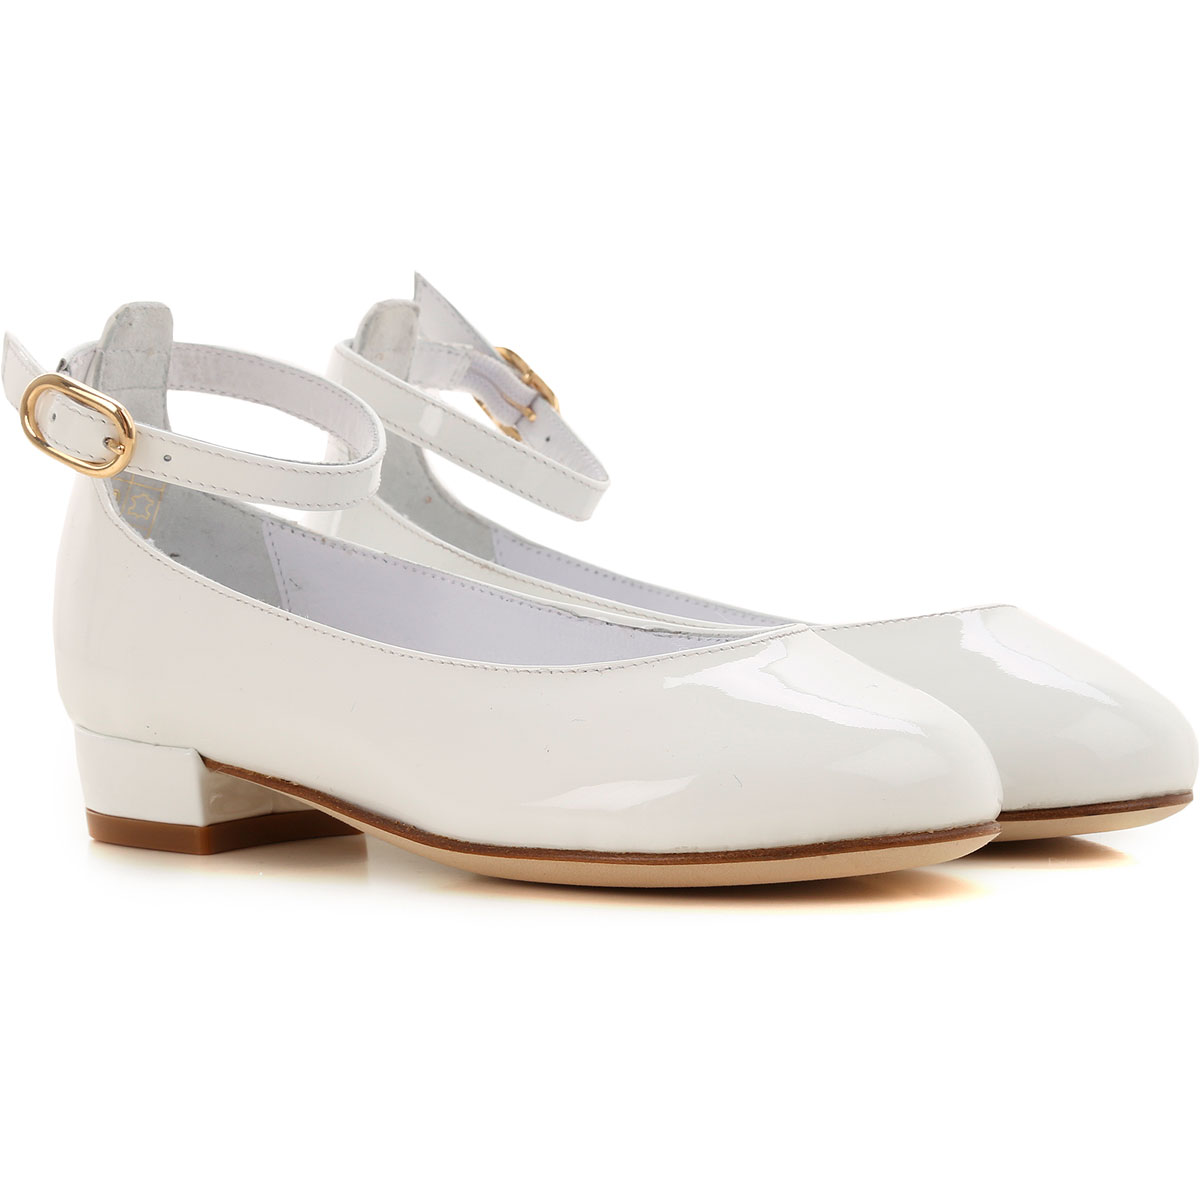 Image of Prosperine Kids Shoes for Girls, White, Leather, 2017, 24 25 26 27 28 29 30 31 32 33 34 35